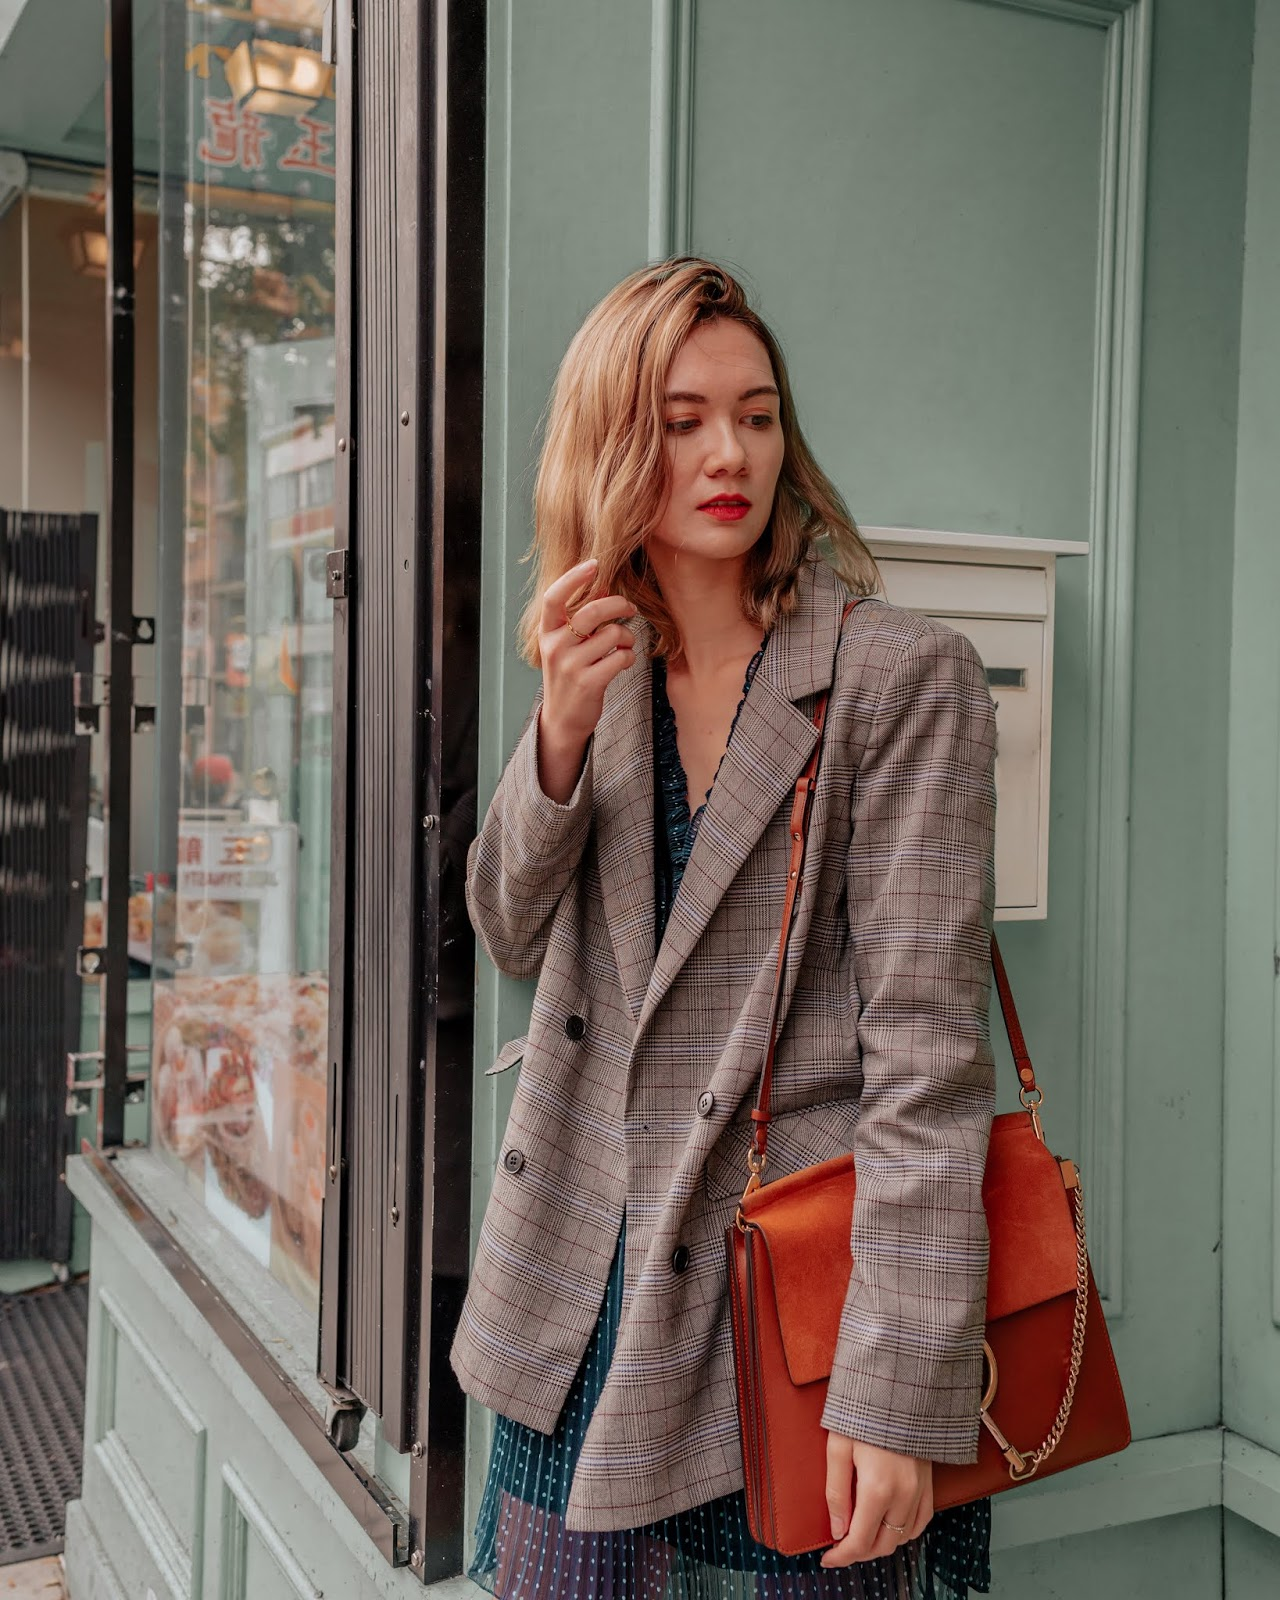 Camel tones, vancouver blogger, fall trends, fall 2018 trends, camel coat, cozy outfit for winter, fall outfit, fall style, canadian style, canadian fashion blogger, plaid blazer, fall dresses, chloe faye, blondo booties